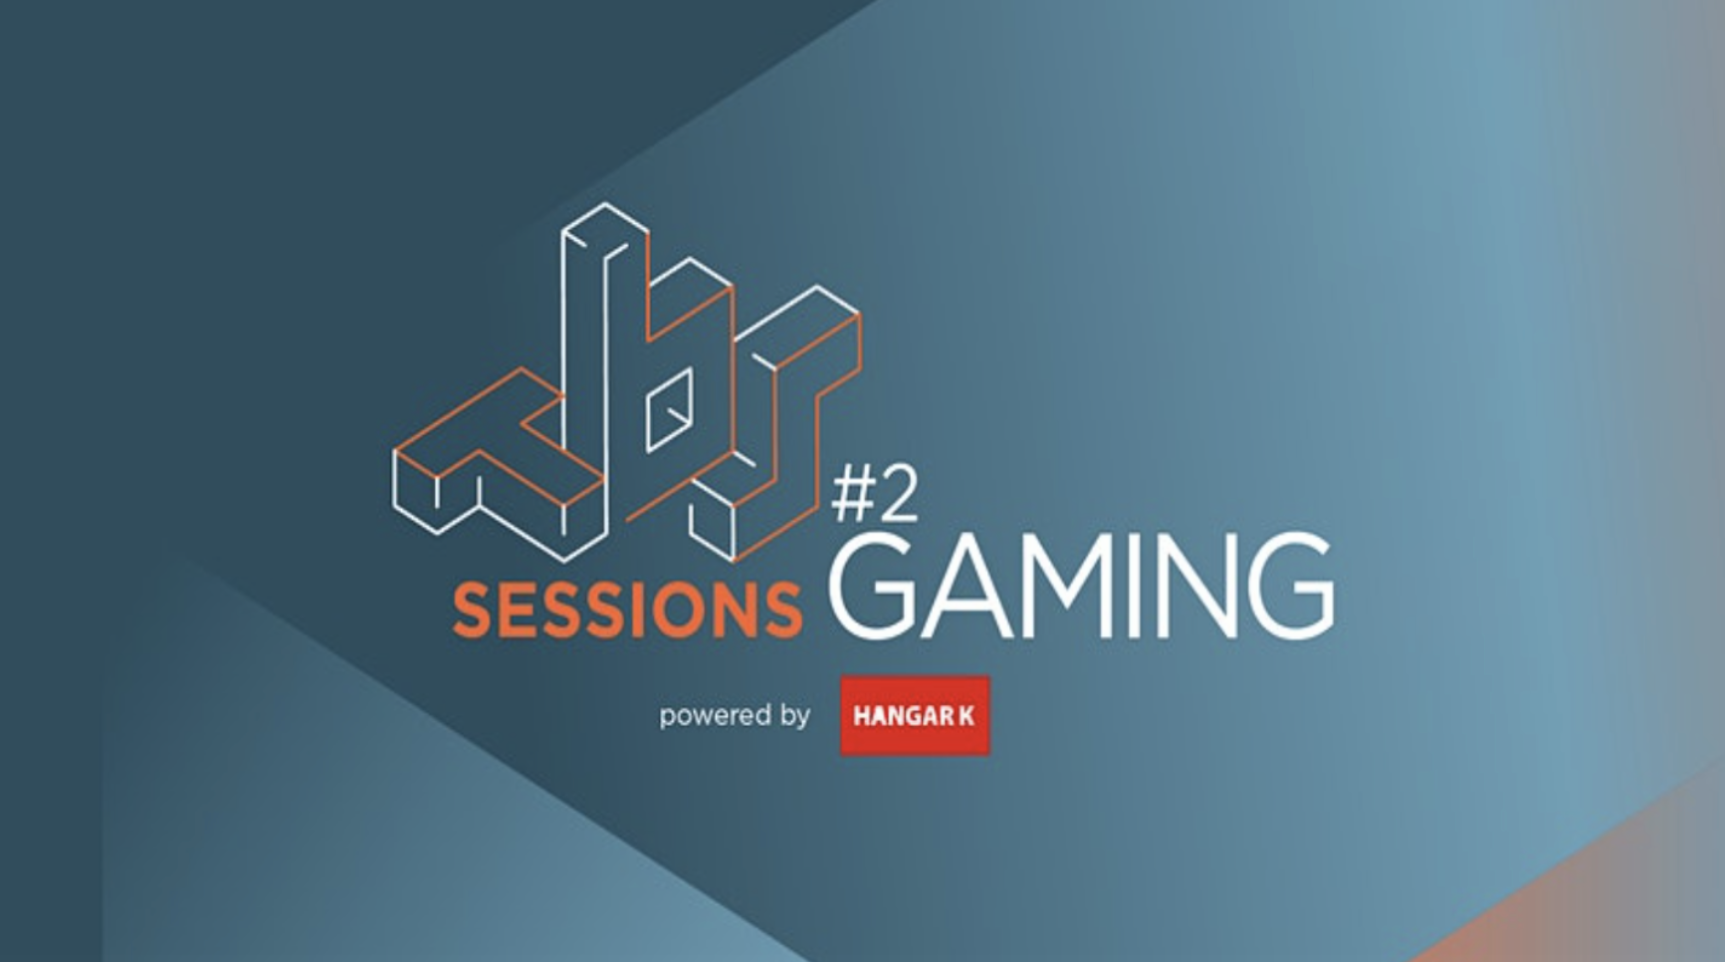 The big score 2021 gaming session